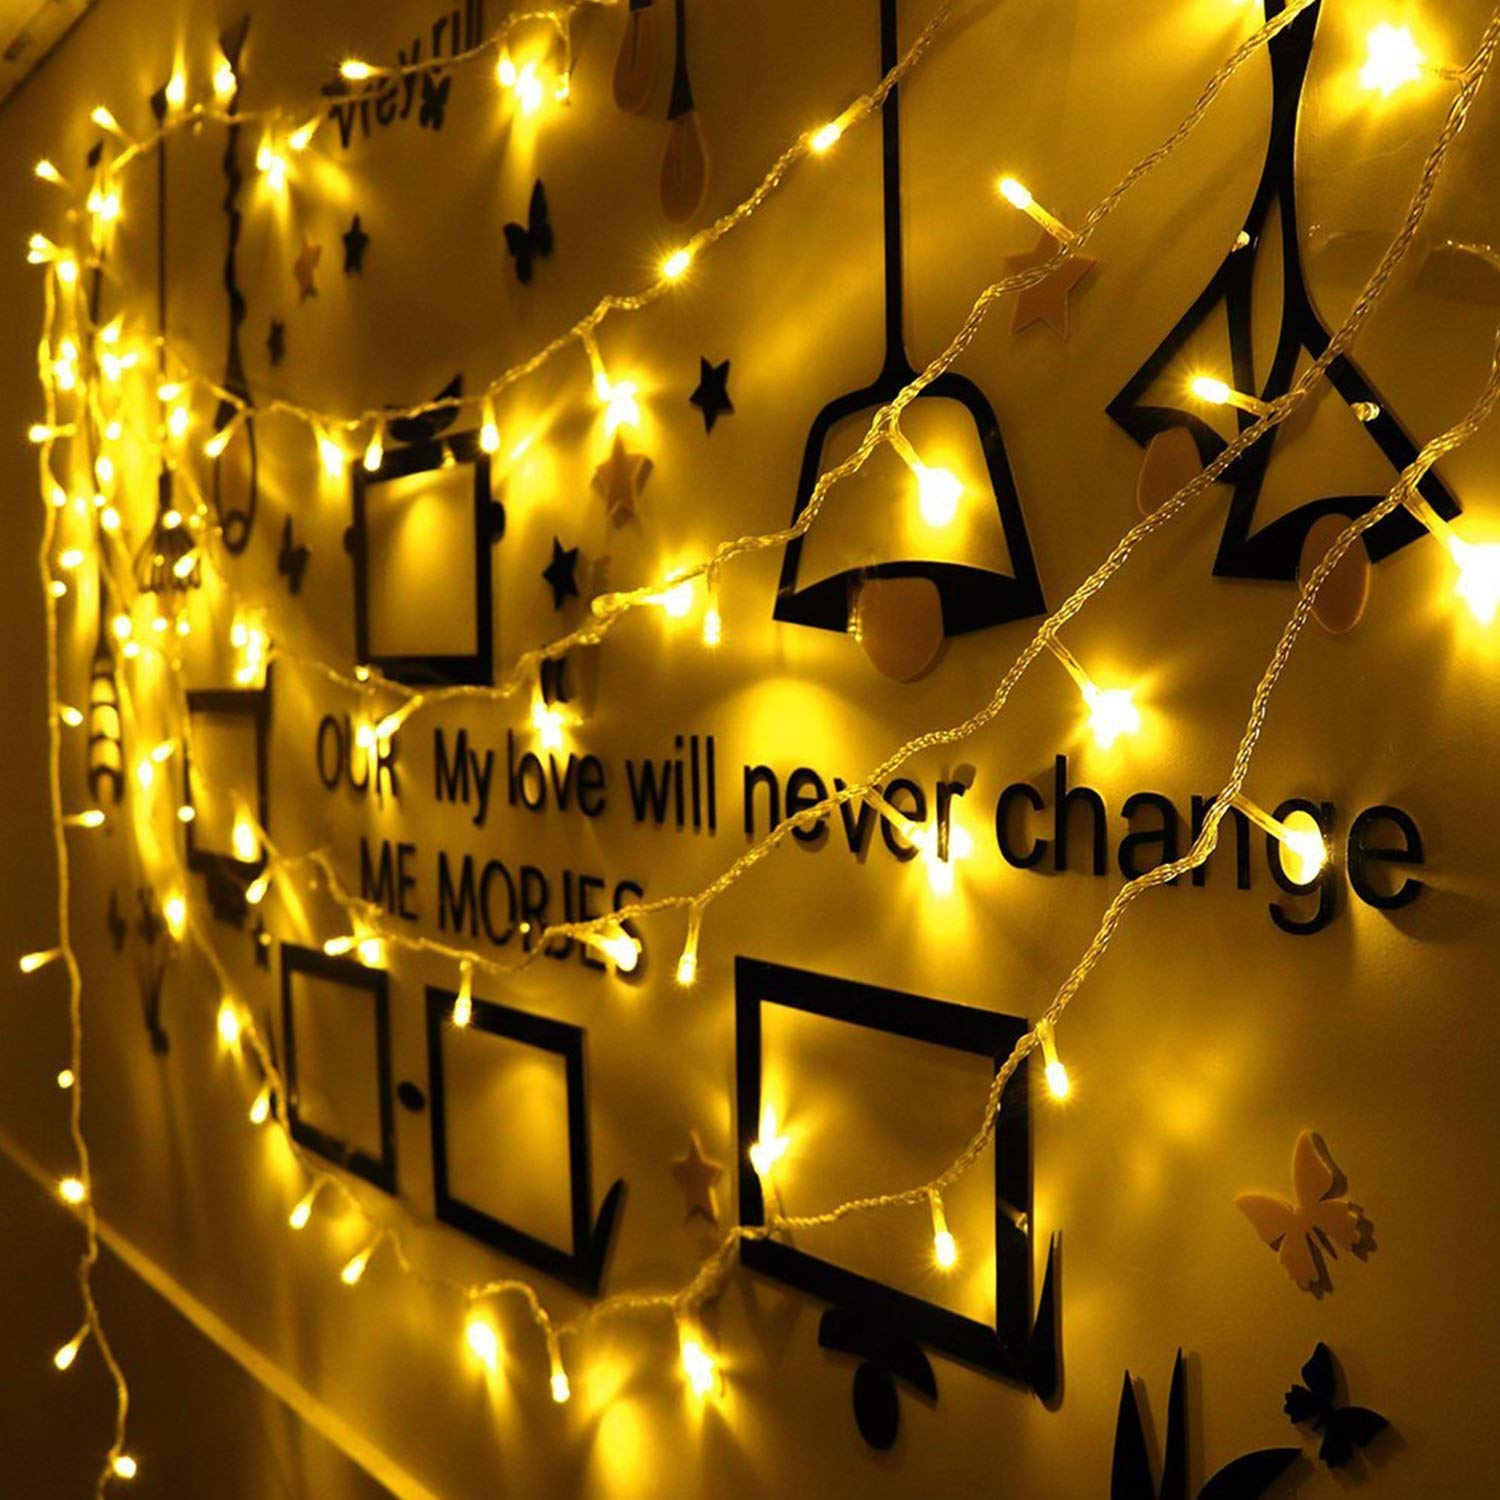 LED Fairy Lights 200 LED String Lights 66ft IP44 Waterproof Warm White Light, DC 31V Low Voltage Transformer Suitable for Indoor, Outdoor, Party, Garden, Christmas